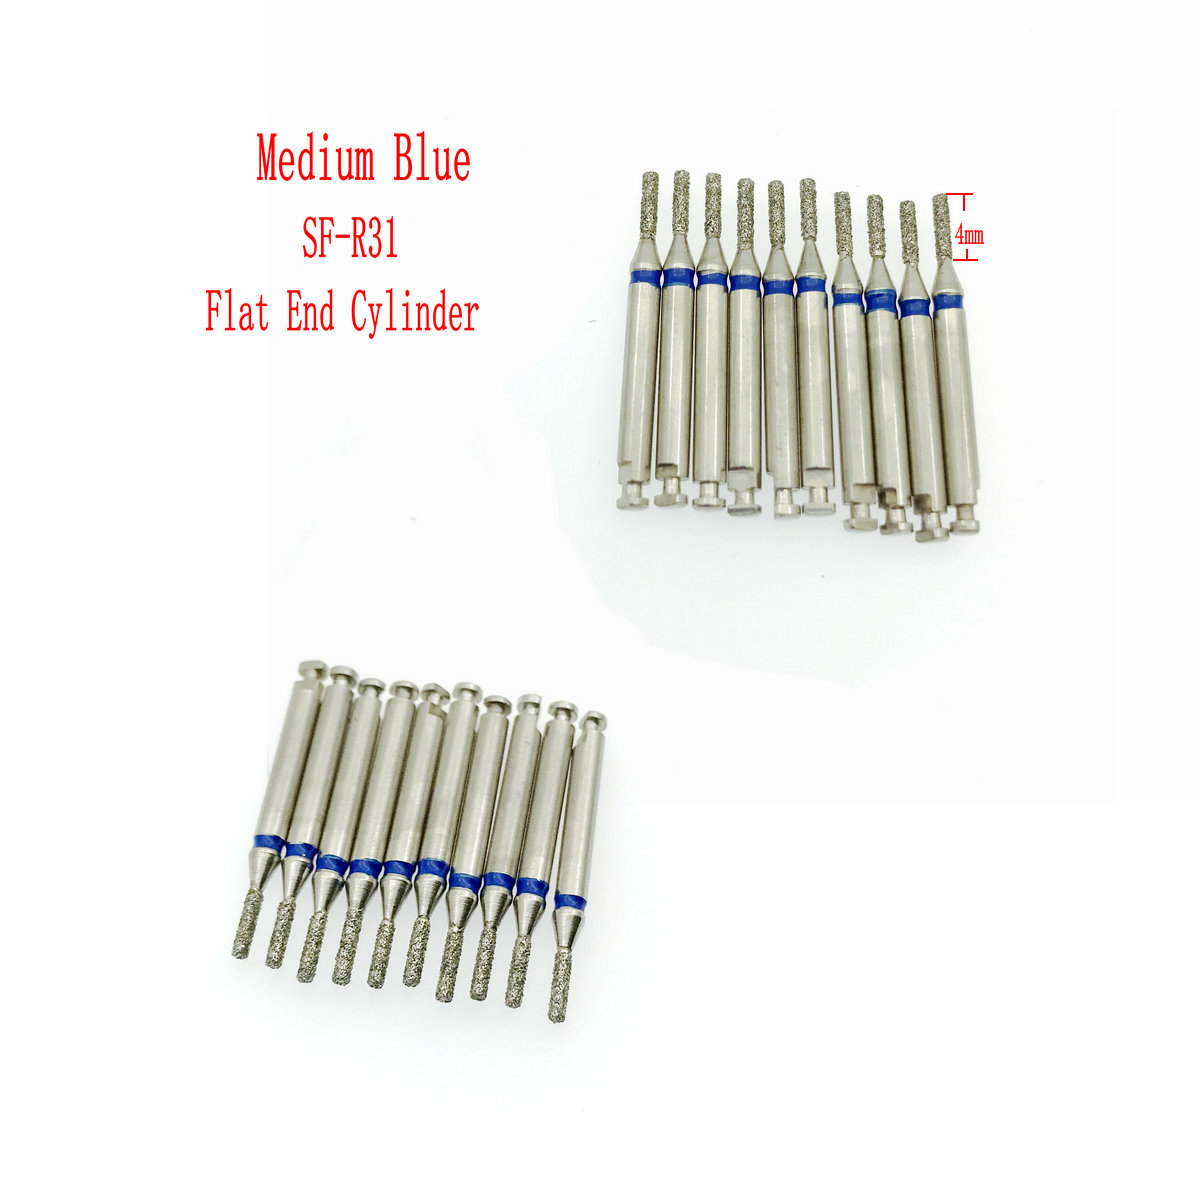 Low Speed Dental Diamond Burs For RA 2.35mm Shank Handpiece Polisher Trimming Flat End Cylinder Head Clinic Drill 10Pcs